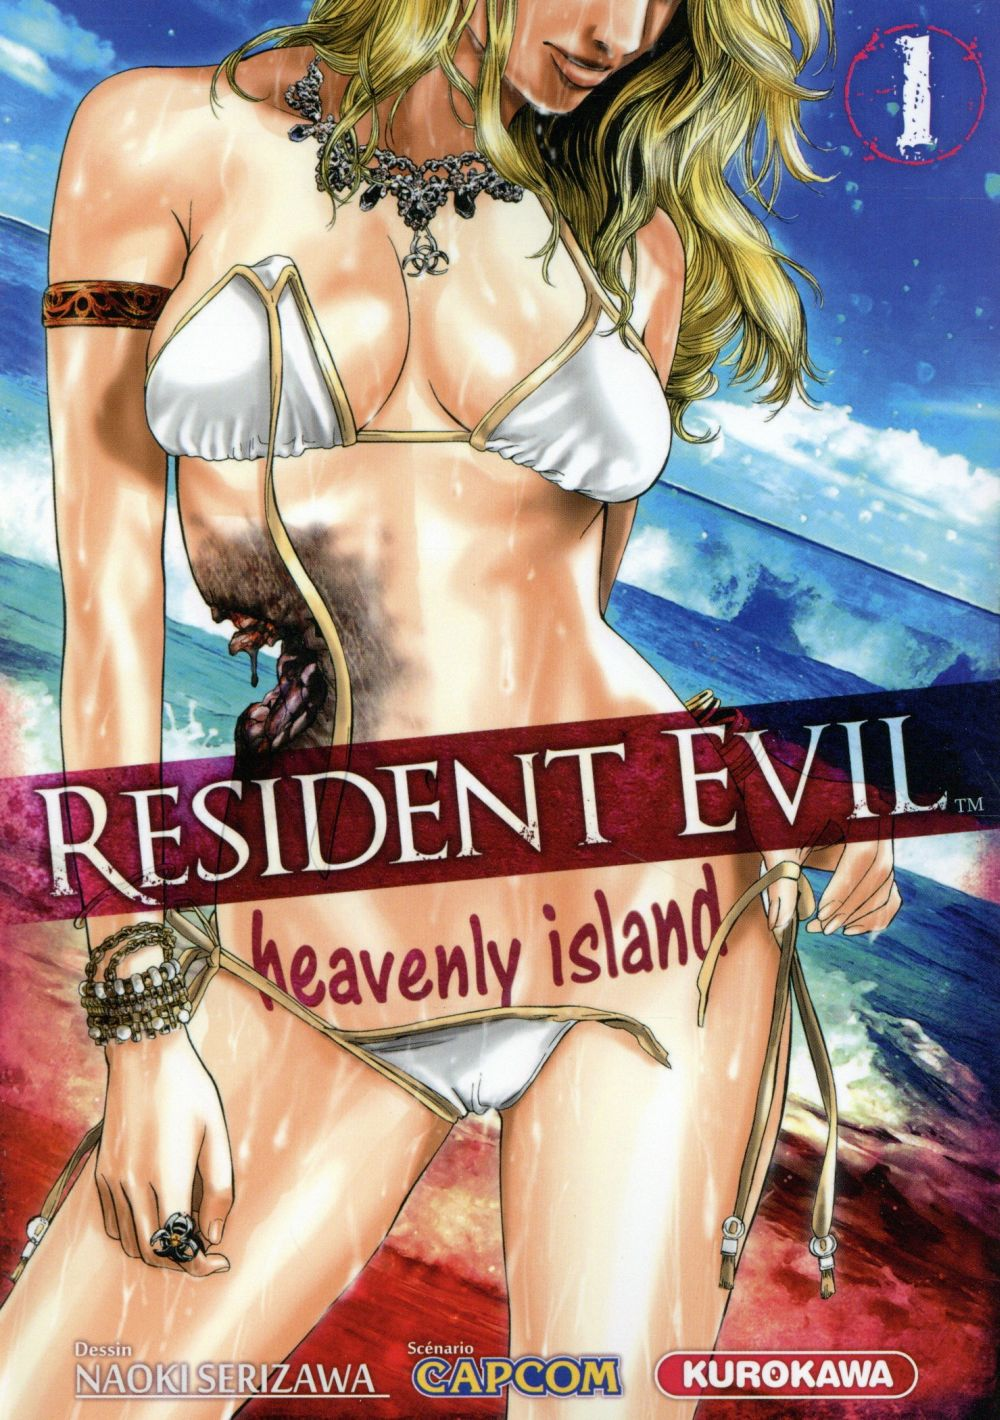 RESIDENT EVIL - HEAVENLY ISLAND - TOME 1 - VOL1